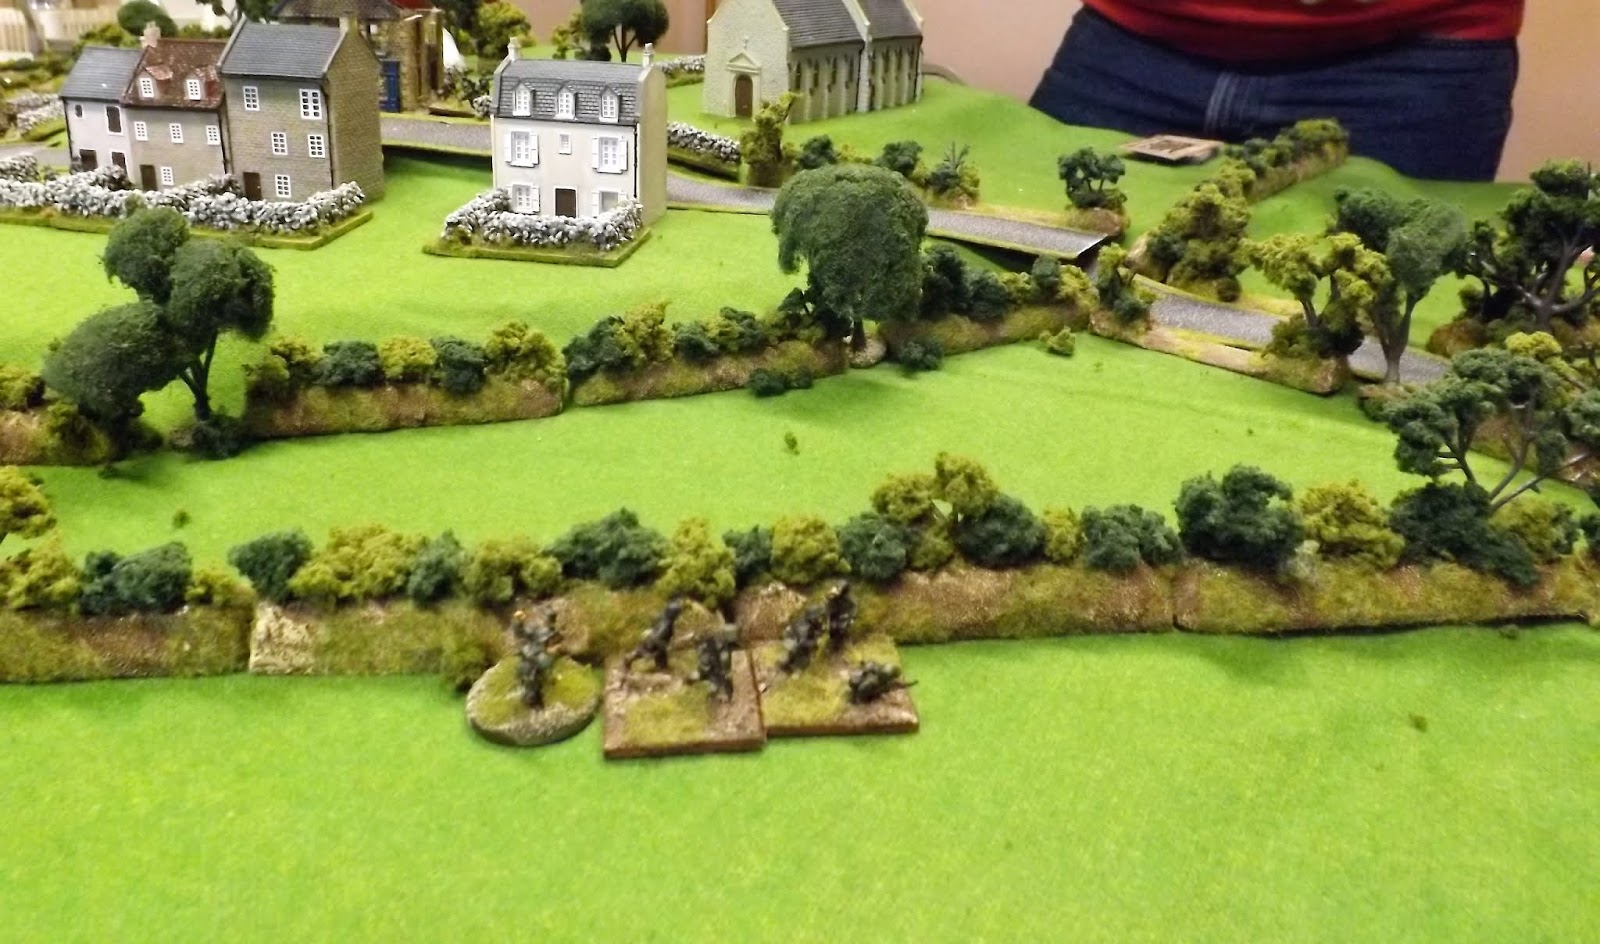 Obst.Fh. Christiansen leads the remains of Zug 2 back along the hedgerows having successfully broken contact